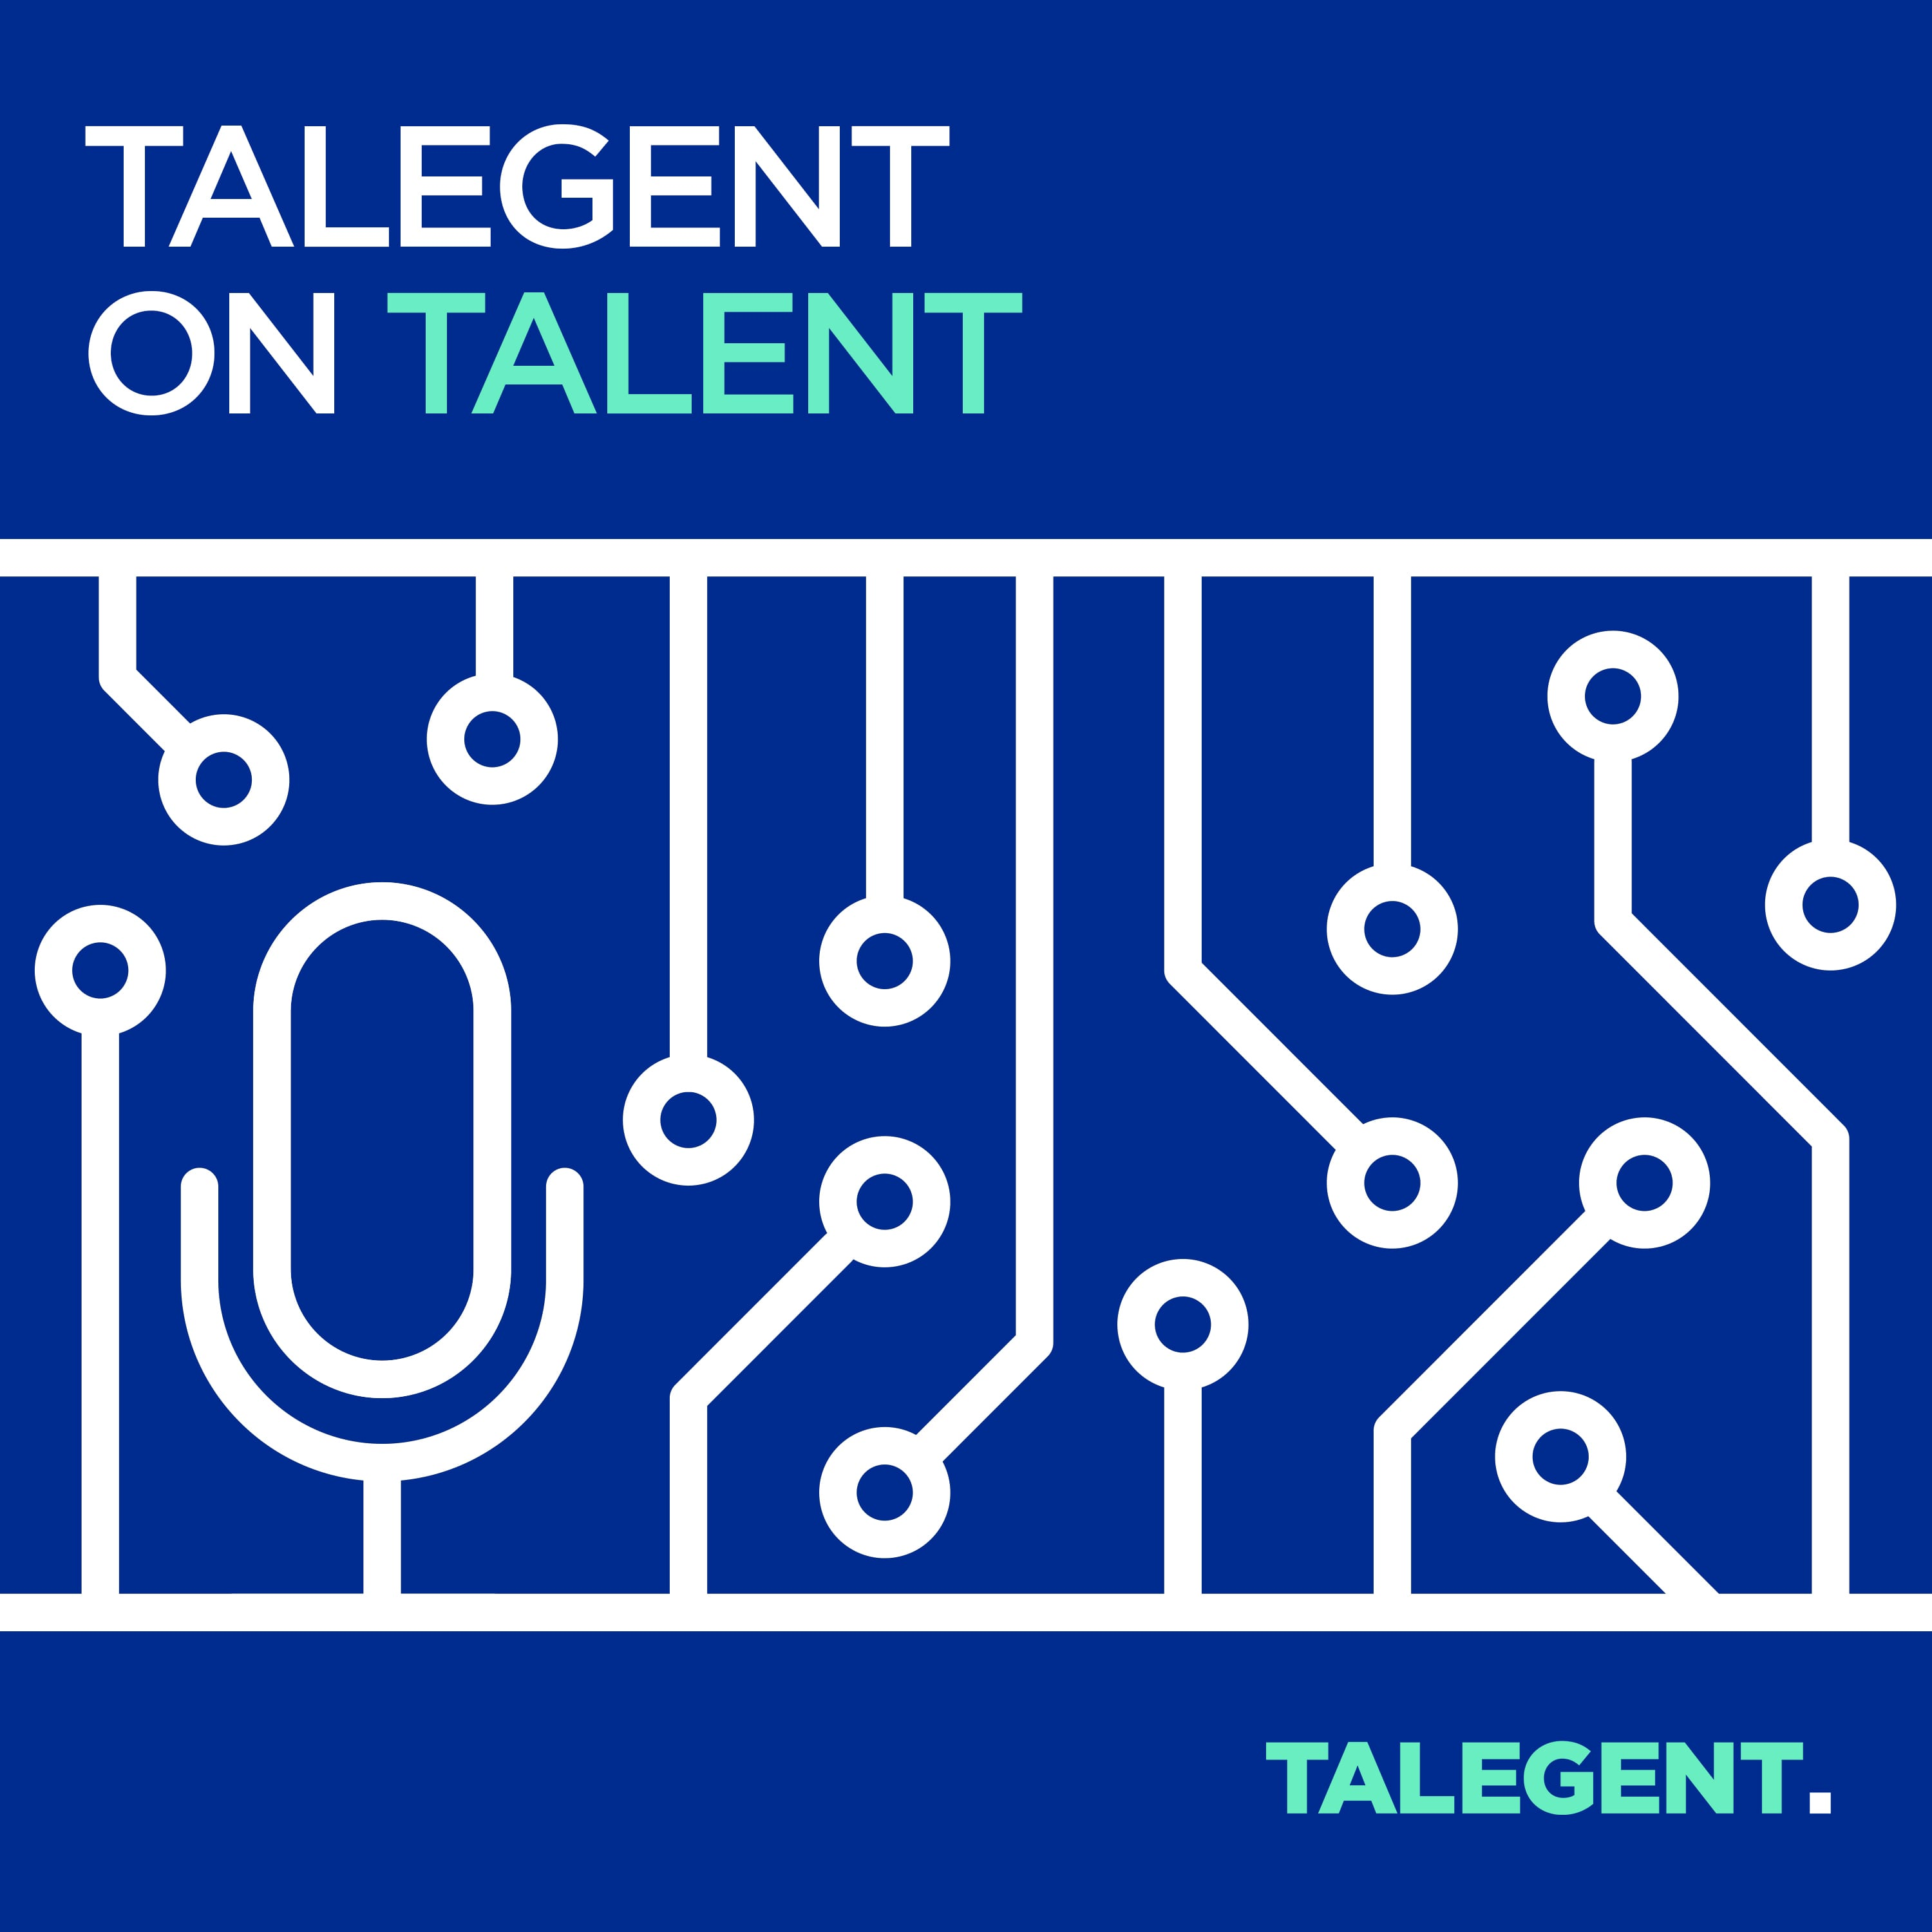 Talegent on talent